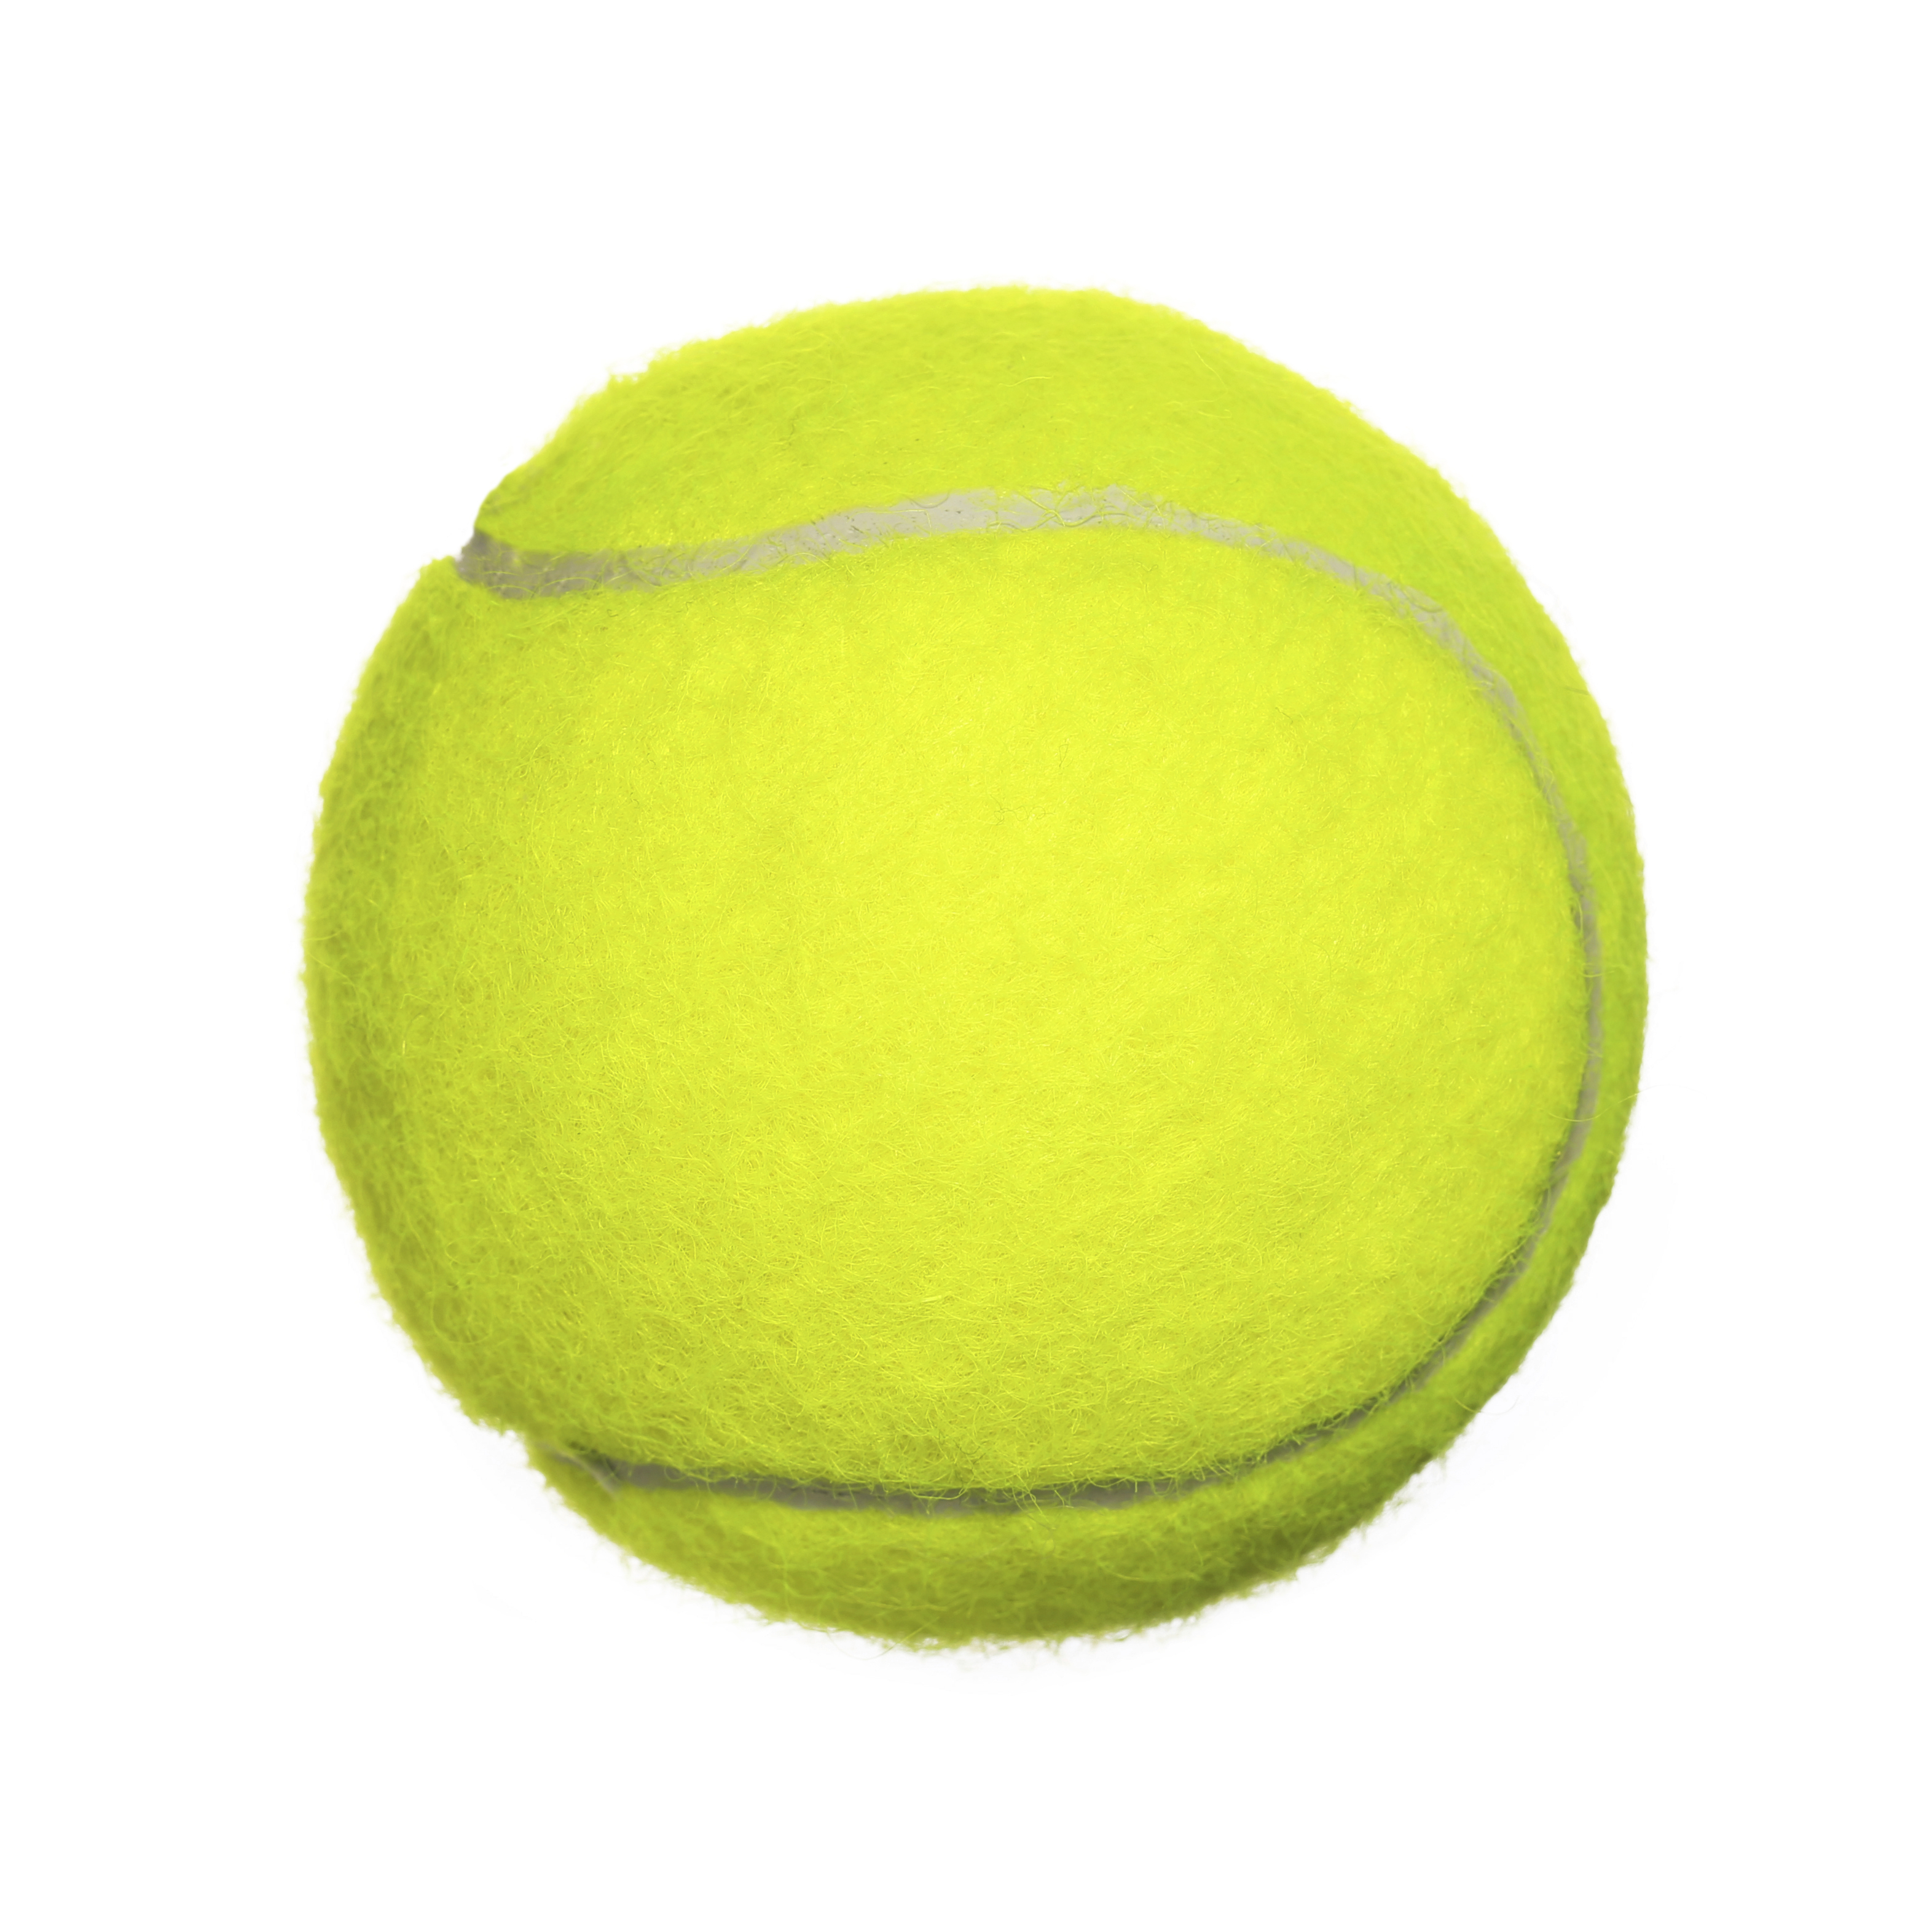 3144x3144 Behind The Fuzz History Of The Tennis Ball Tennis Week